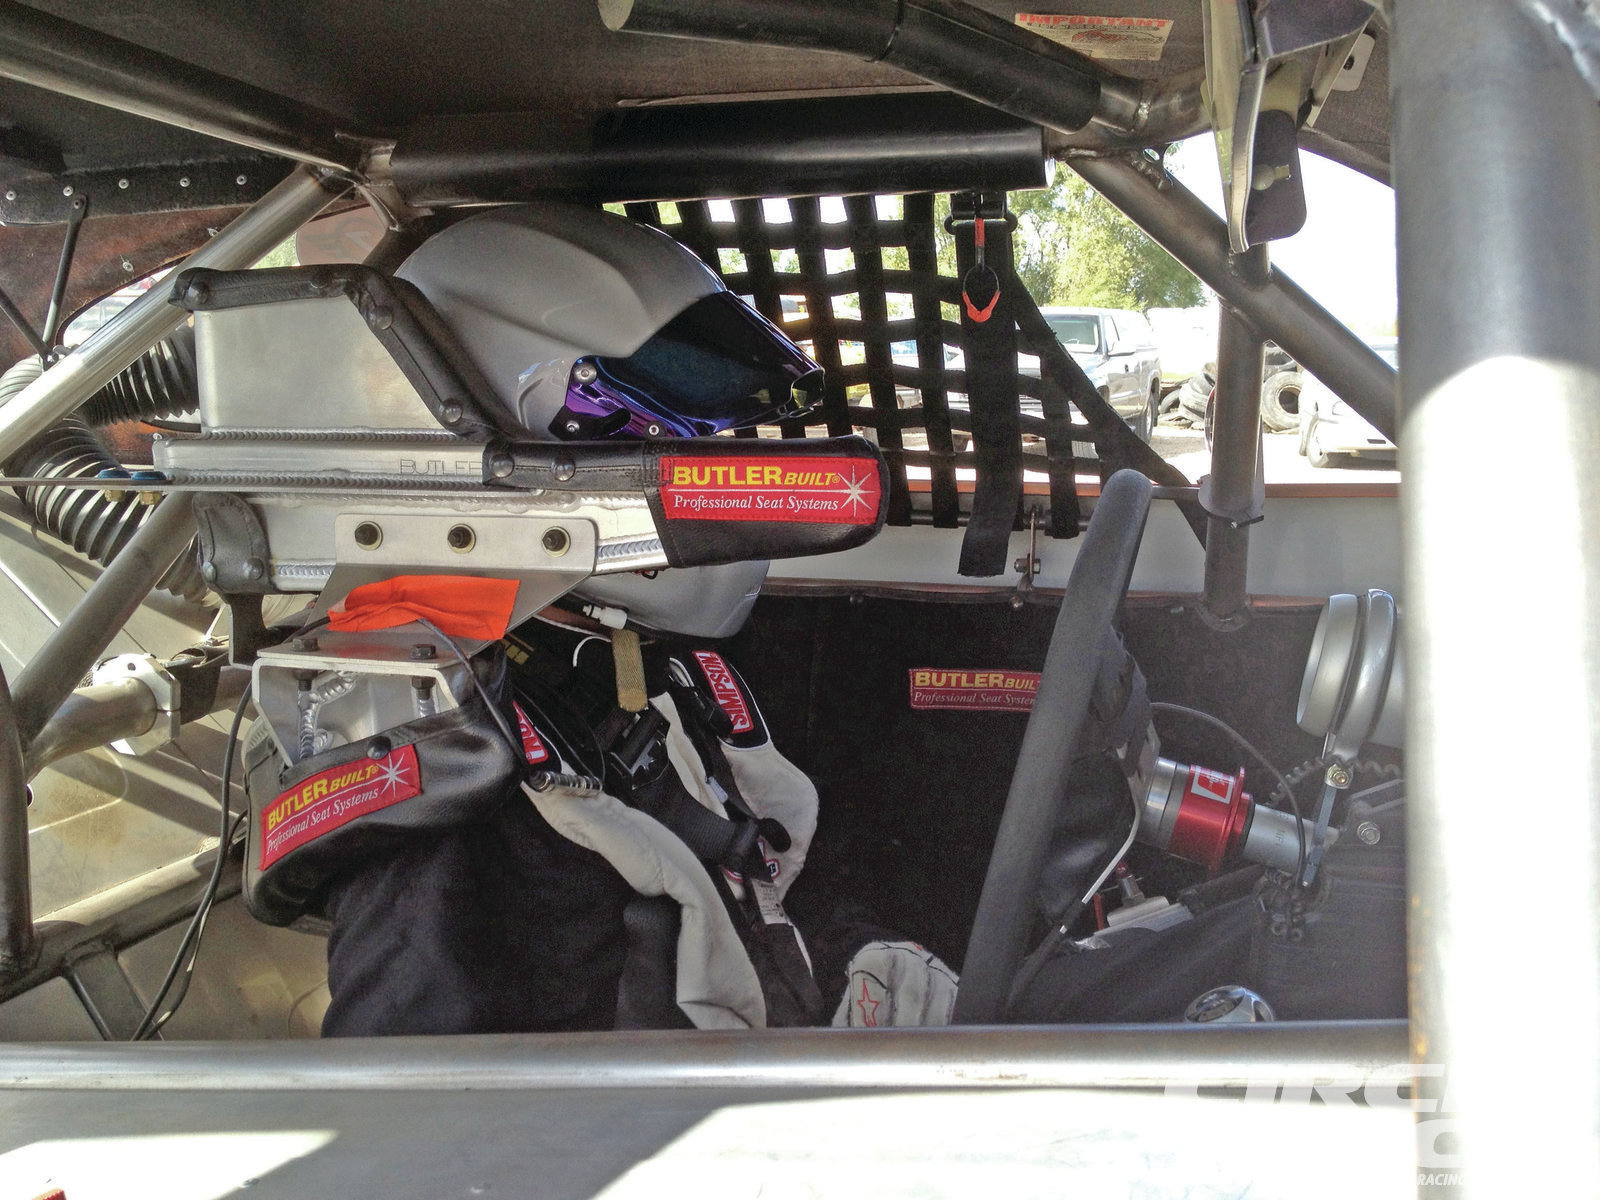 04. Full containment seats are necessary to minimize your chance of serious injury in any wreck.